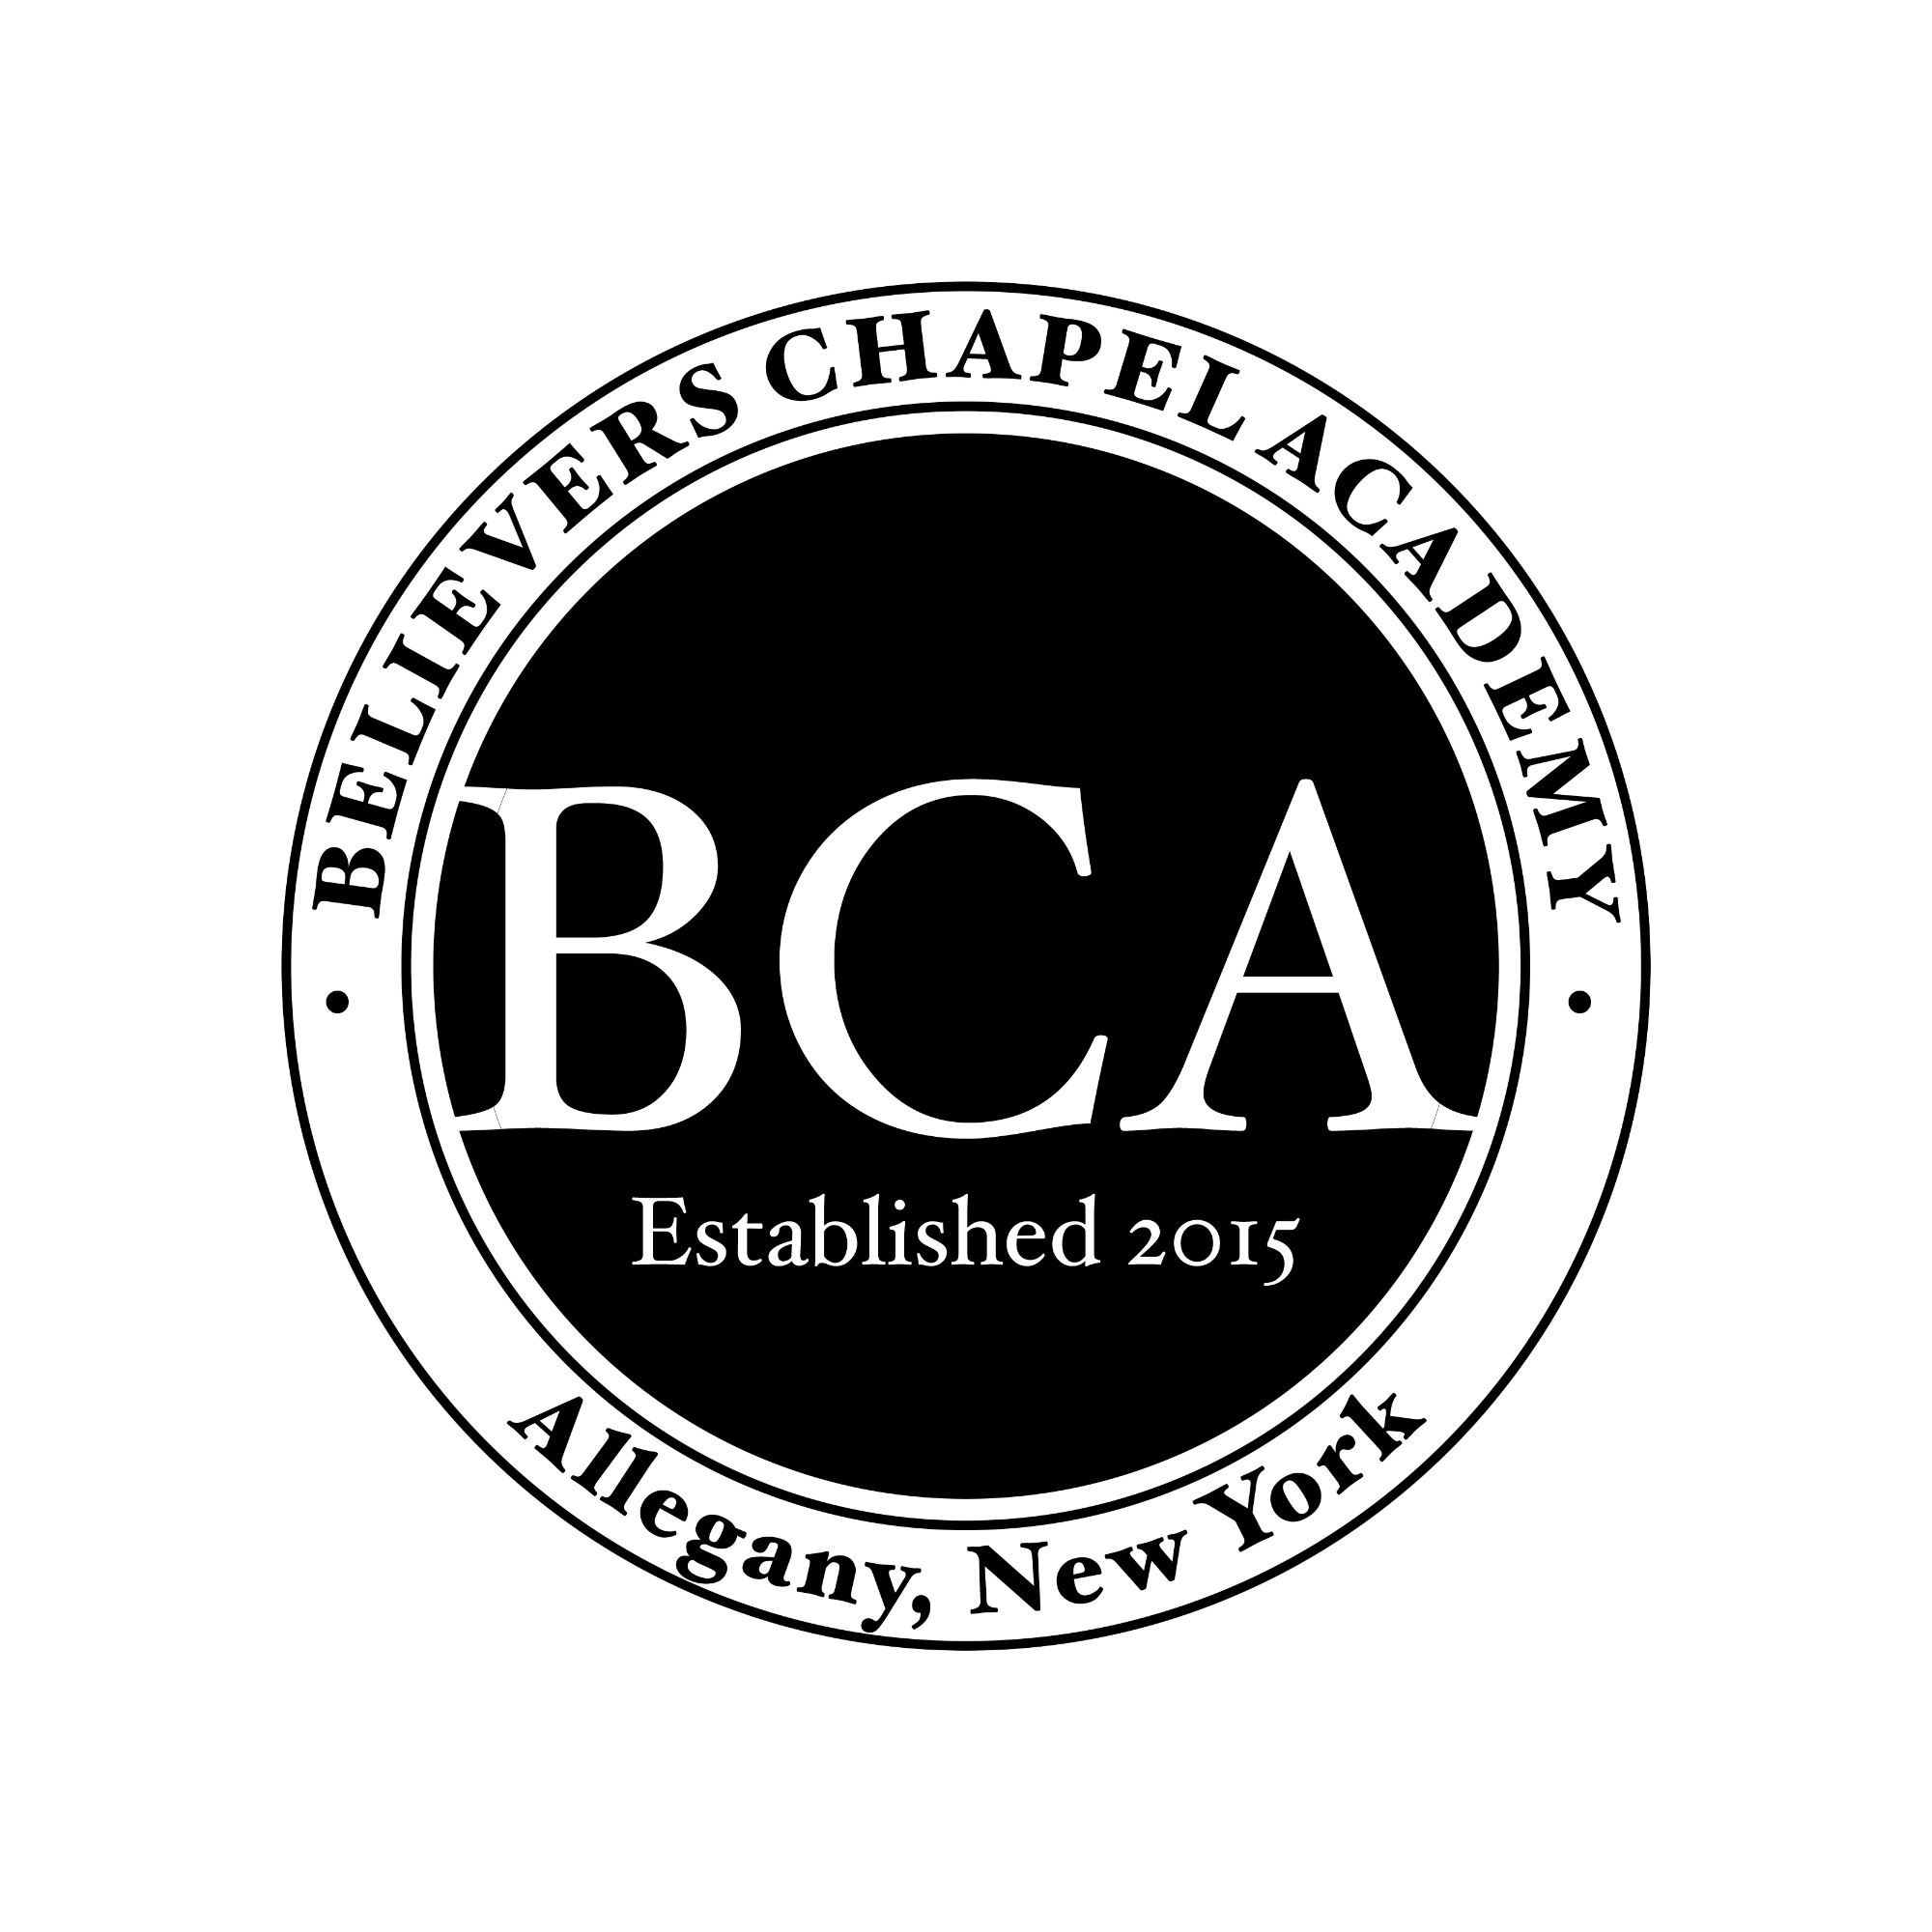 bca believers chapel logo #32673